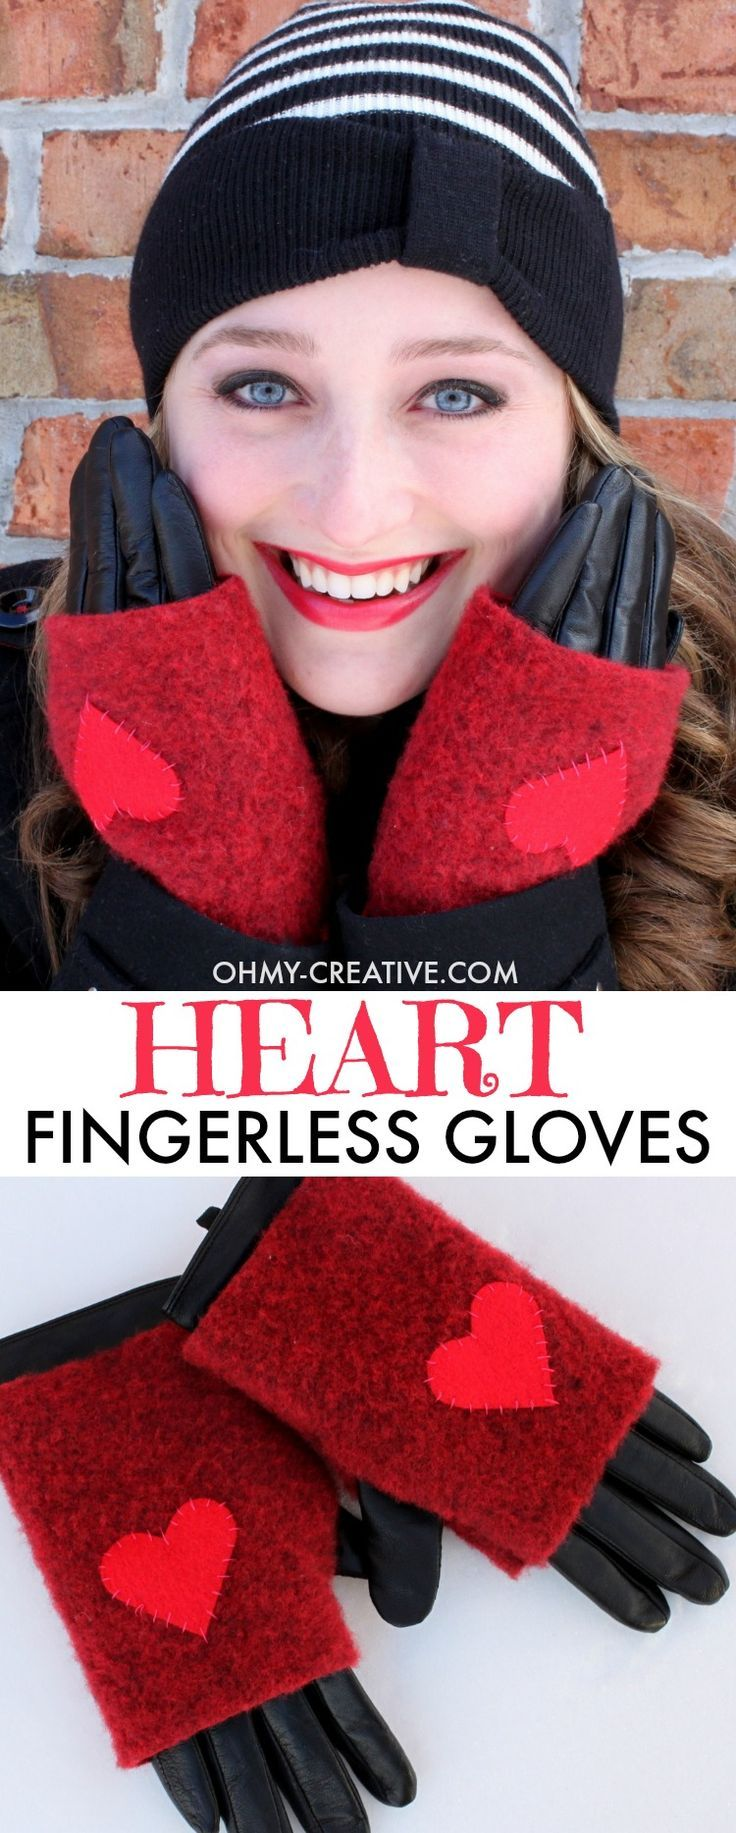 How to make Wool Fingerless Gloves - Sewn with a handmade heart perfect for Valentine's Day! A great handmade gift for mothers, daughters and friends.     OHMY-CREATIVE.COM